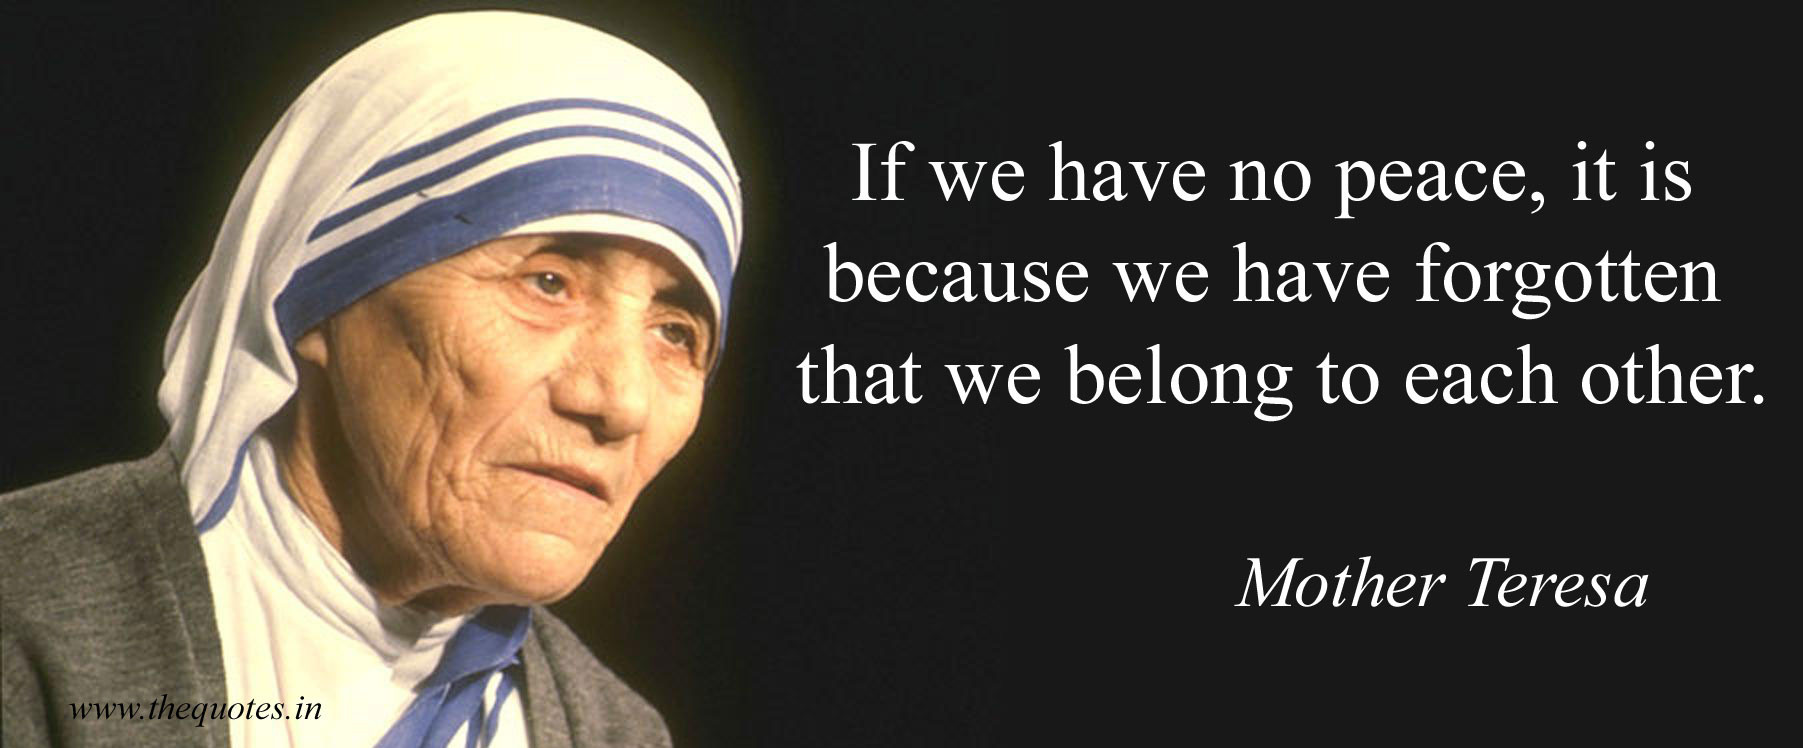 Mother Teresa Peace Quote  mother teresa pecae